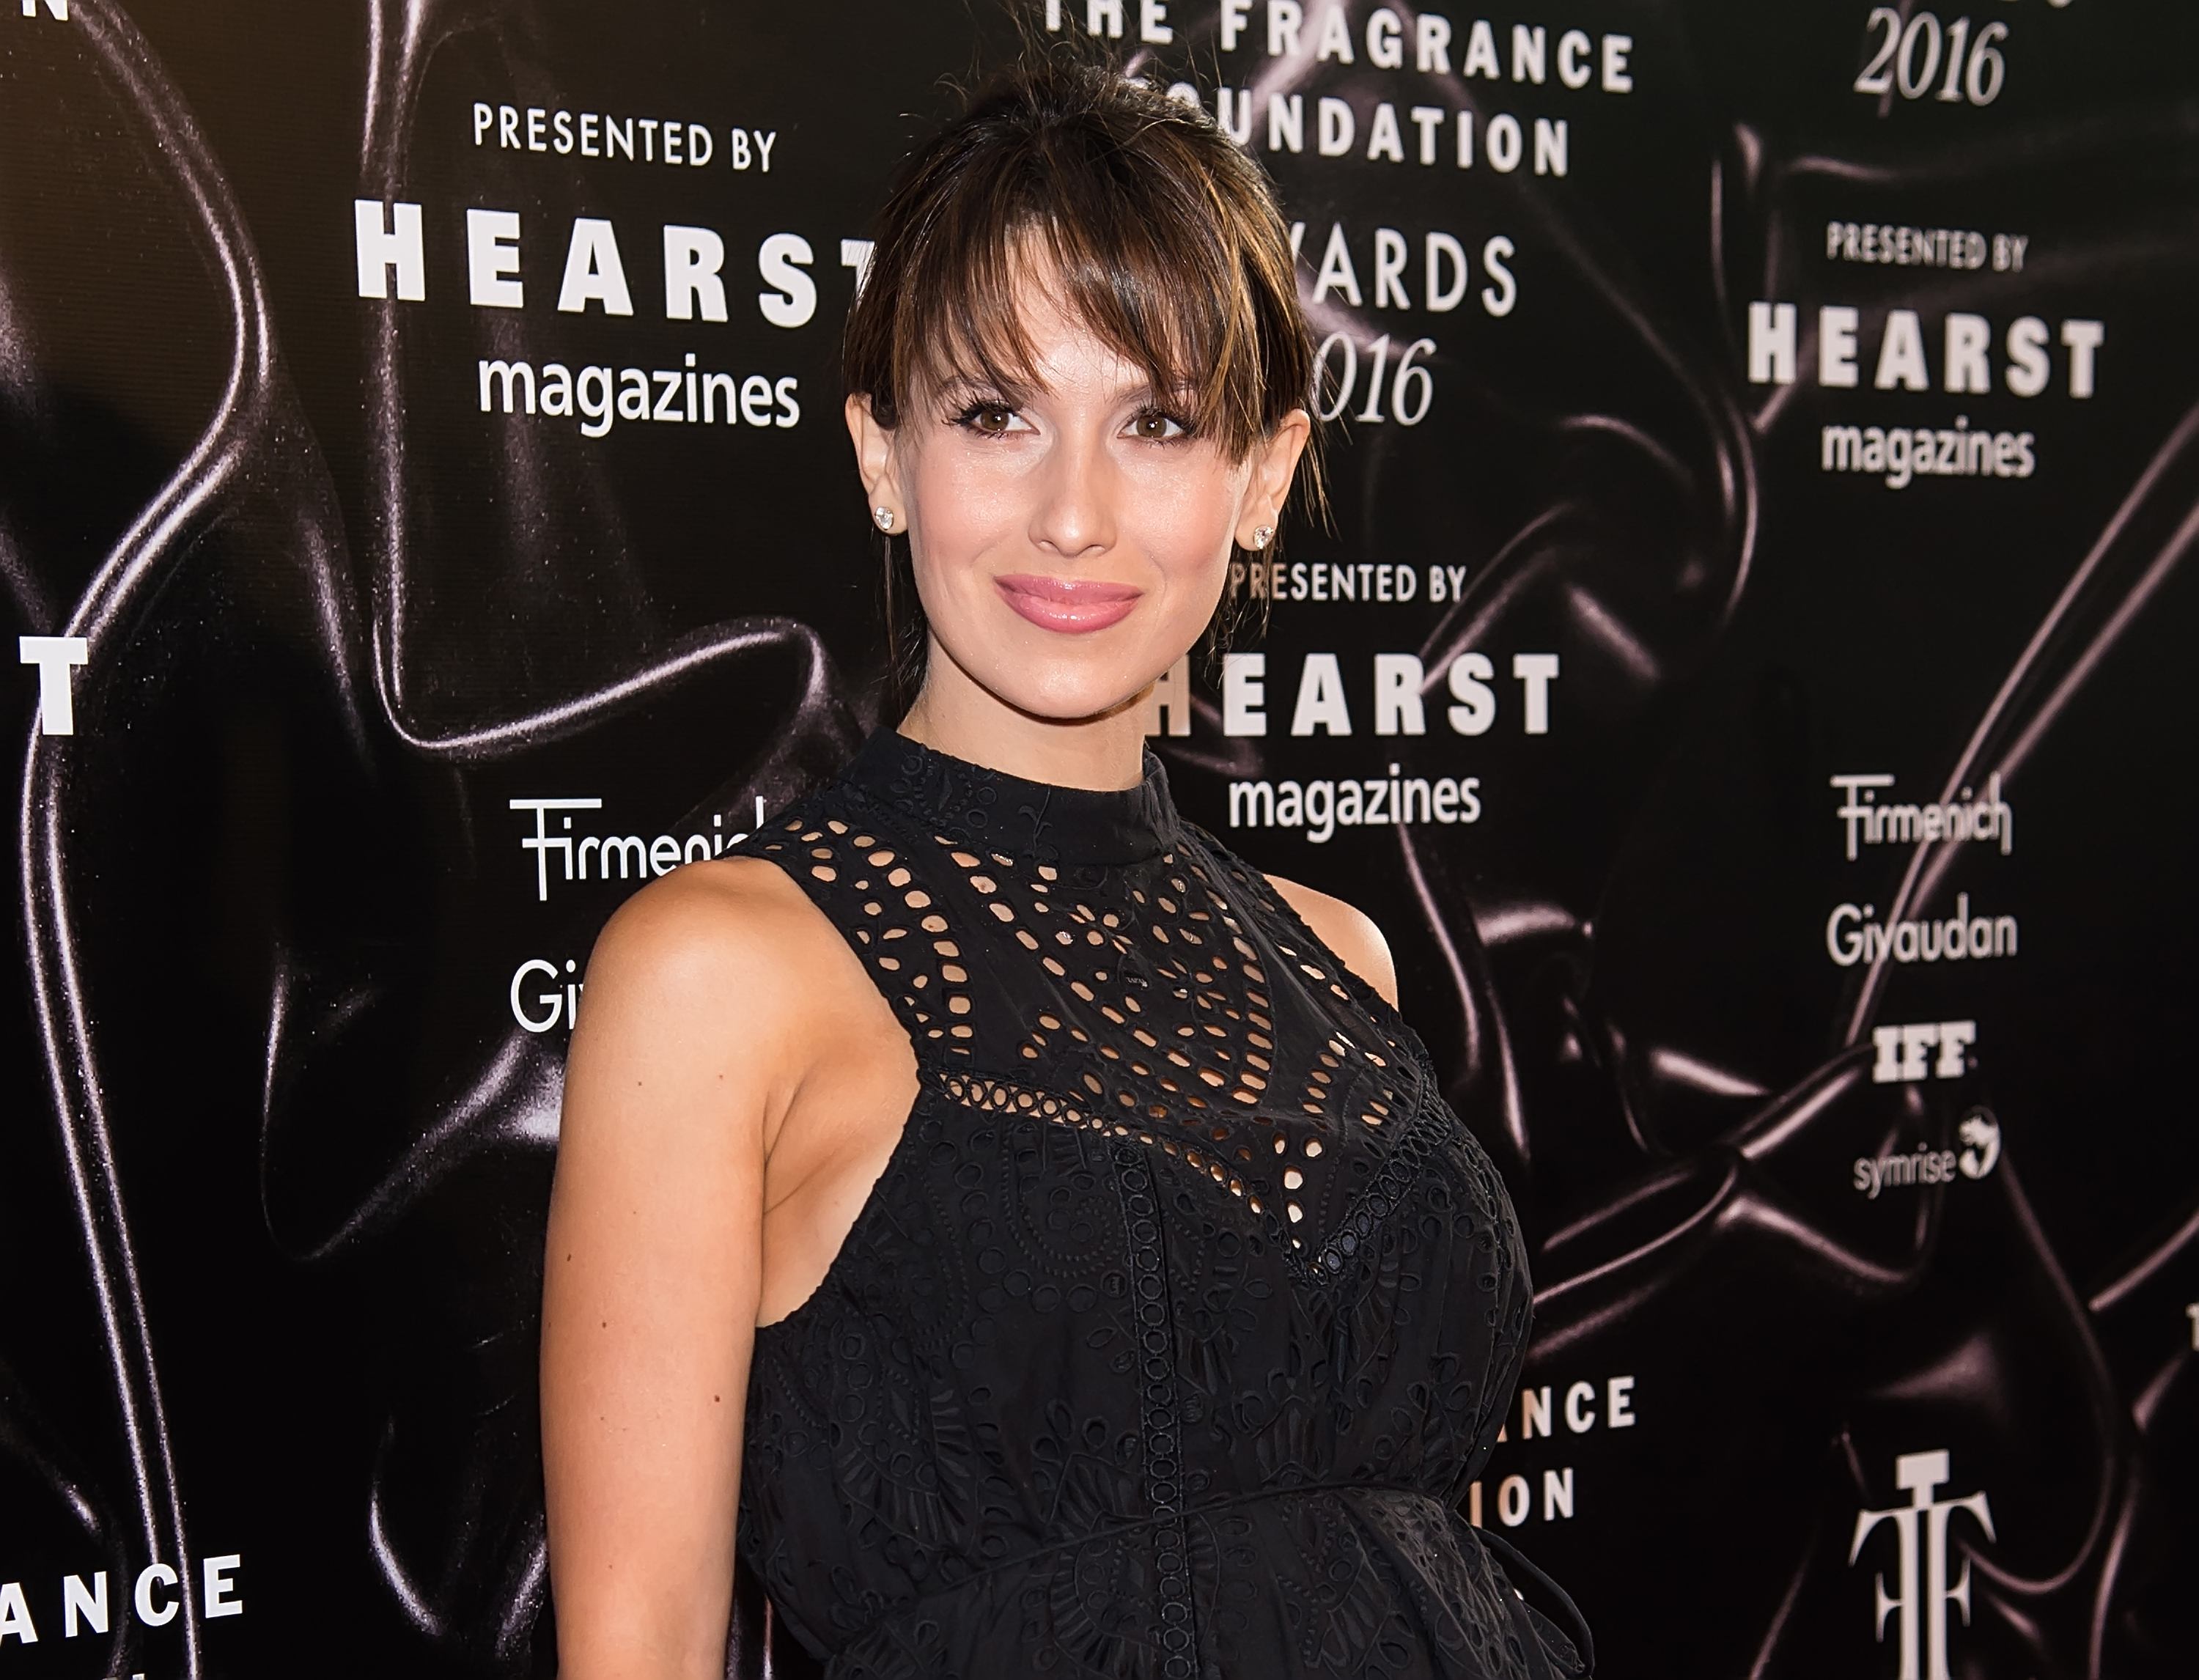 Hilaria Baldwin posted this picture of her stomach 24-hours after giving birth to encourage body positivity, and SO MUCH YES